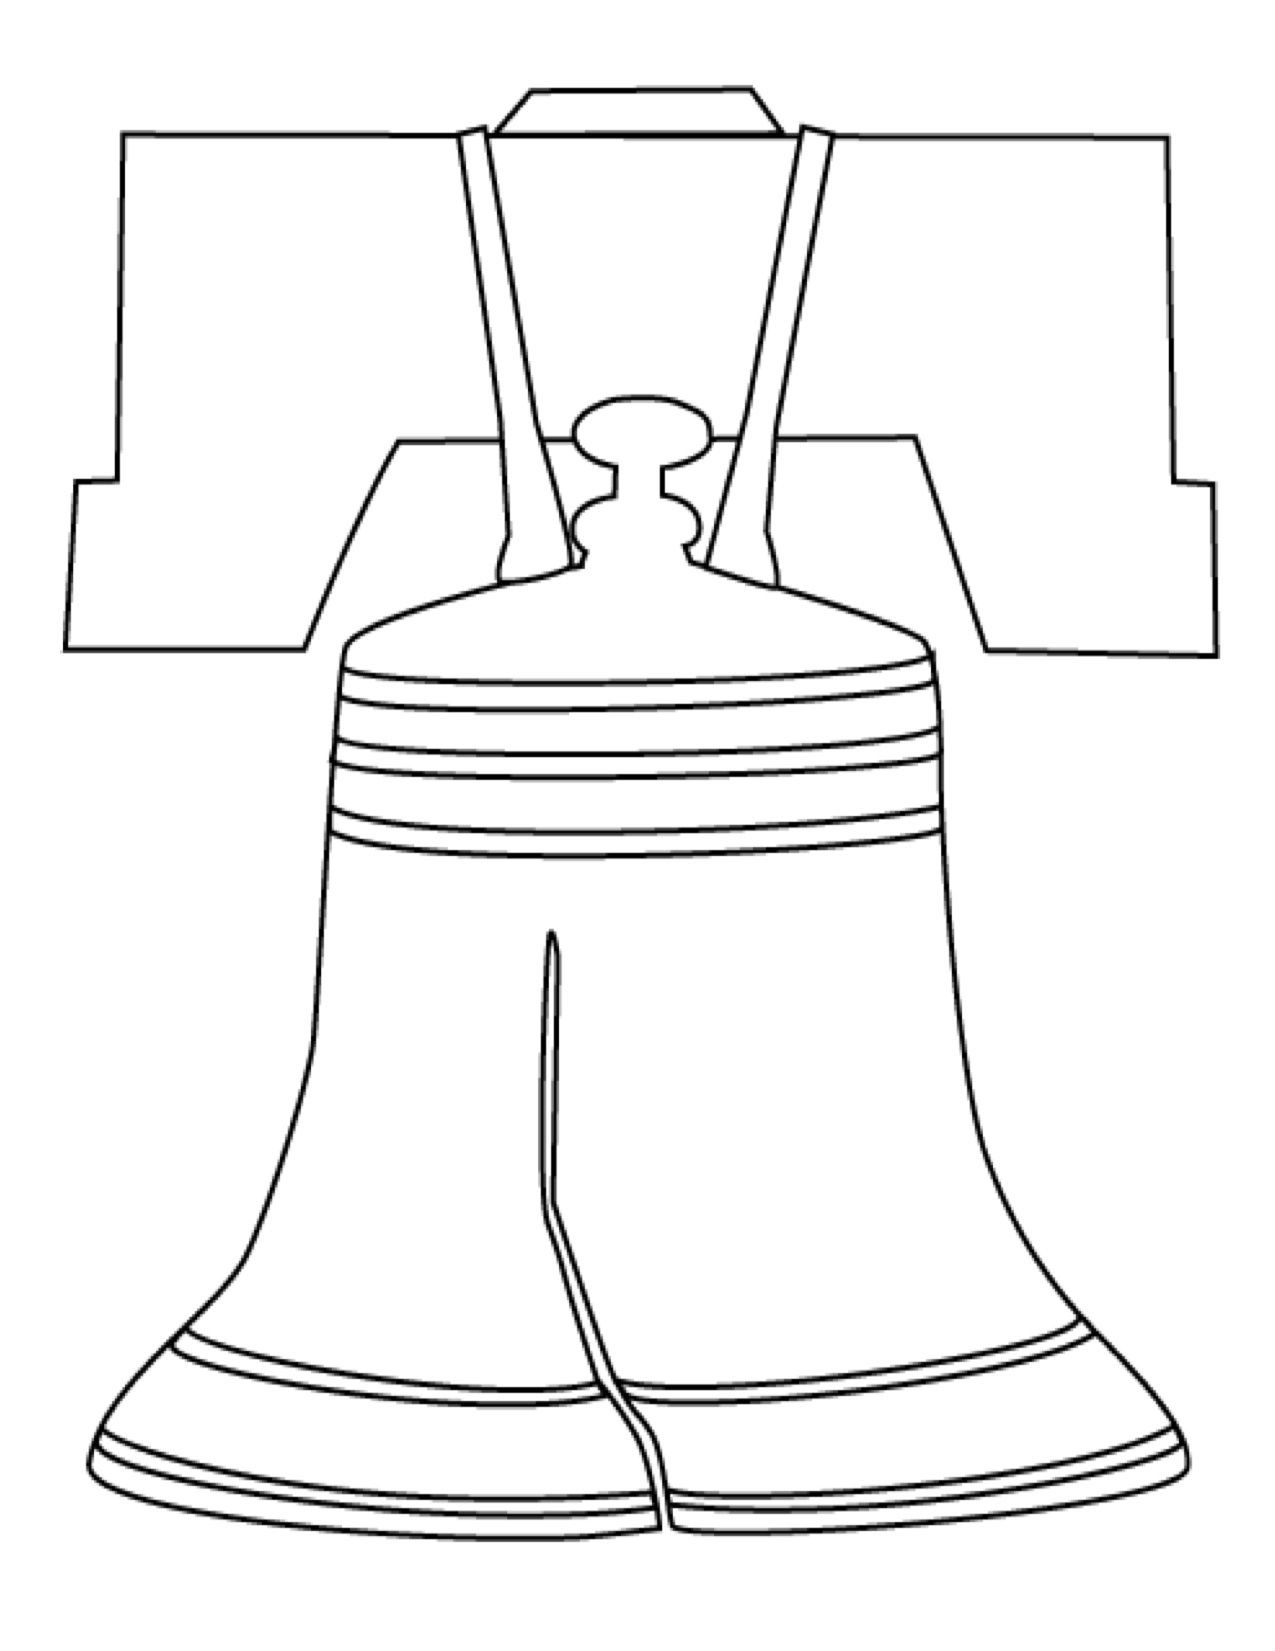 Fourth-Of-July-Liberty-Bell-Craft Template For Kids | Summer ...